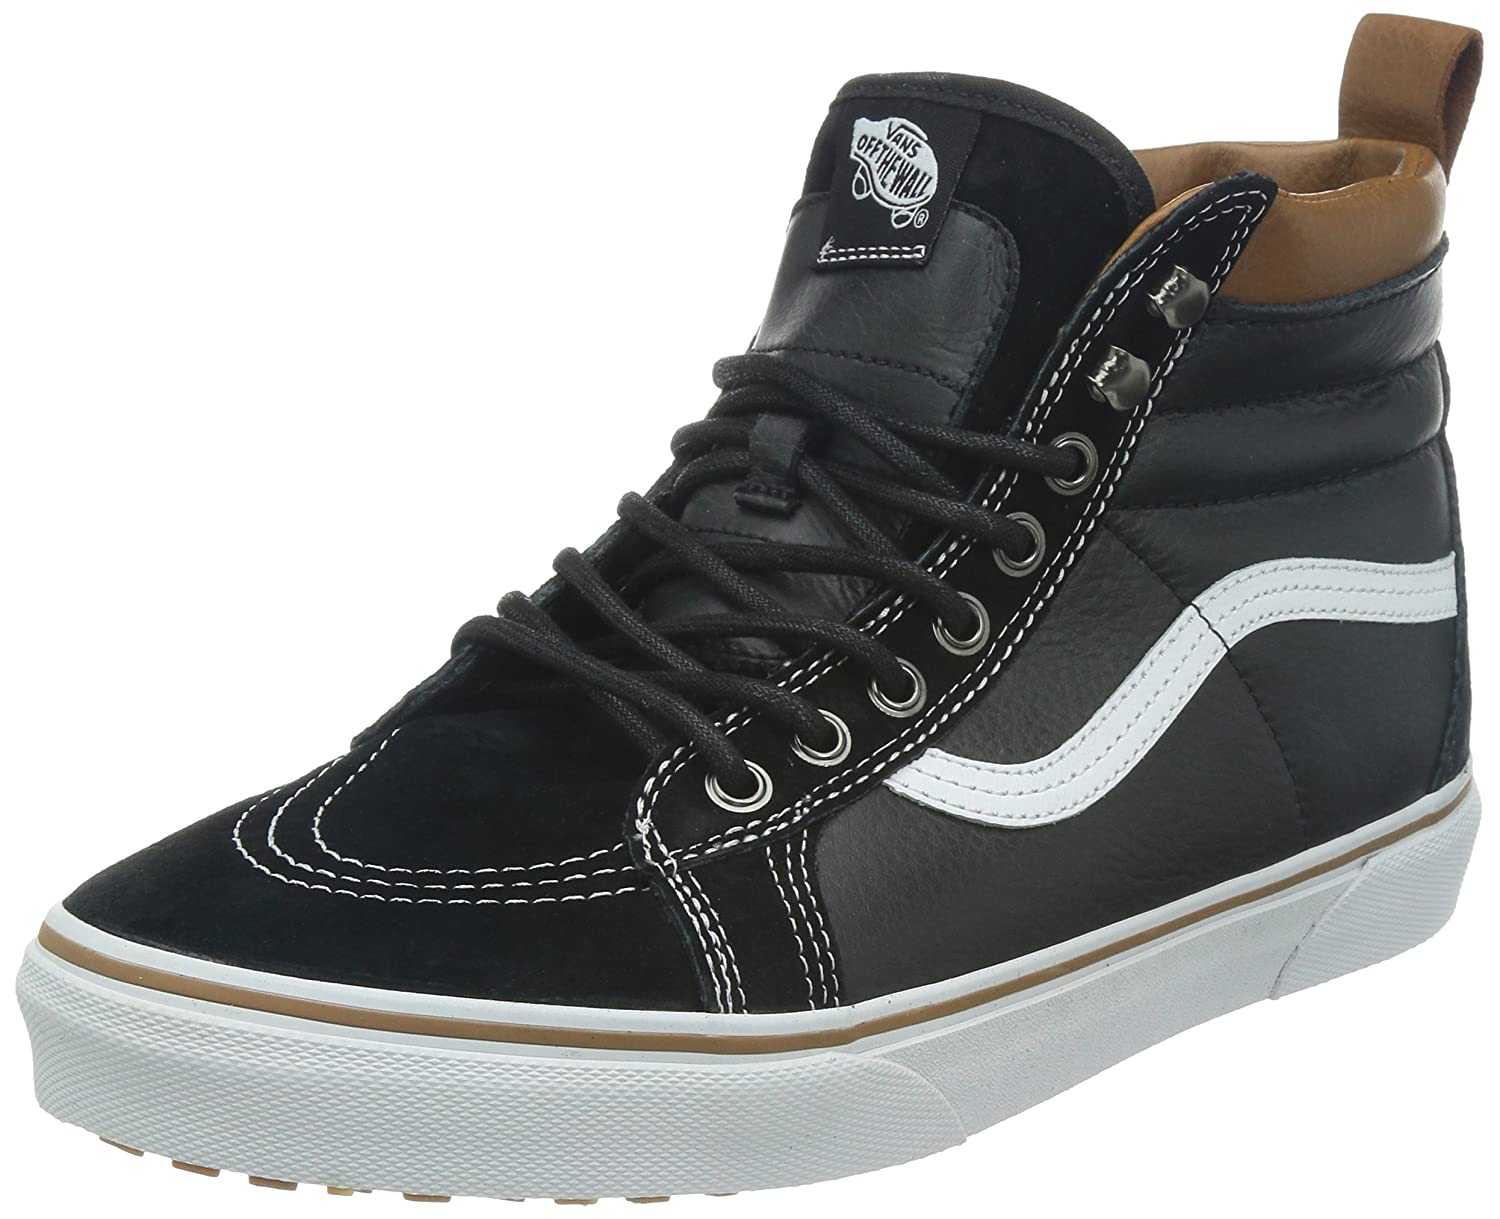 Vans Sk8-Hi Unisex Casual High-Top Skate Shoes, Comfortable and Durable in Signature Waffle Rubber Sole B00HJBRD1W 14.5 Women / 13 Men M US|(Mte) Black/True White